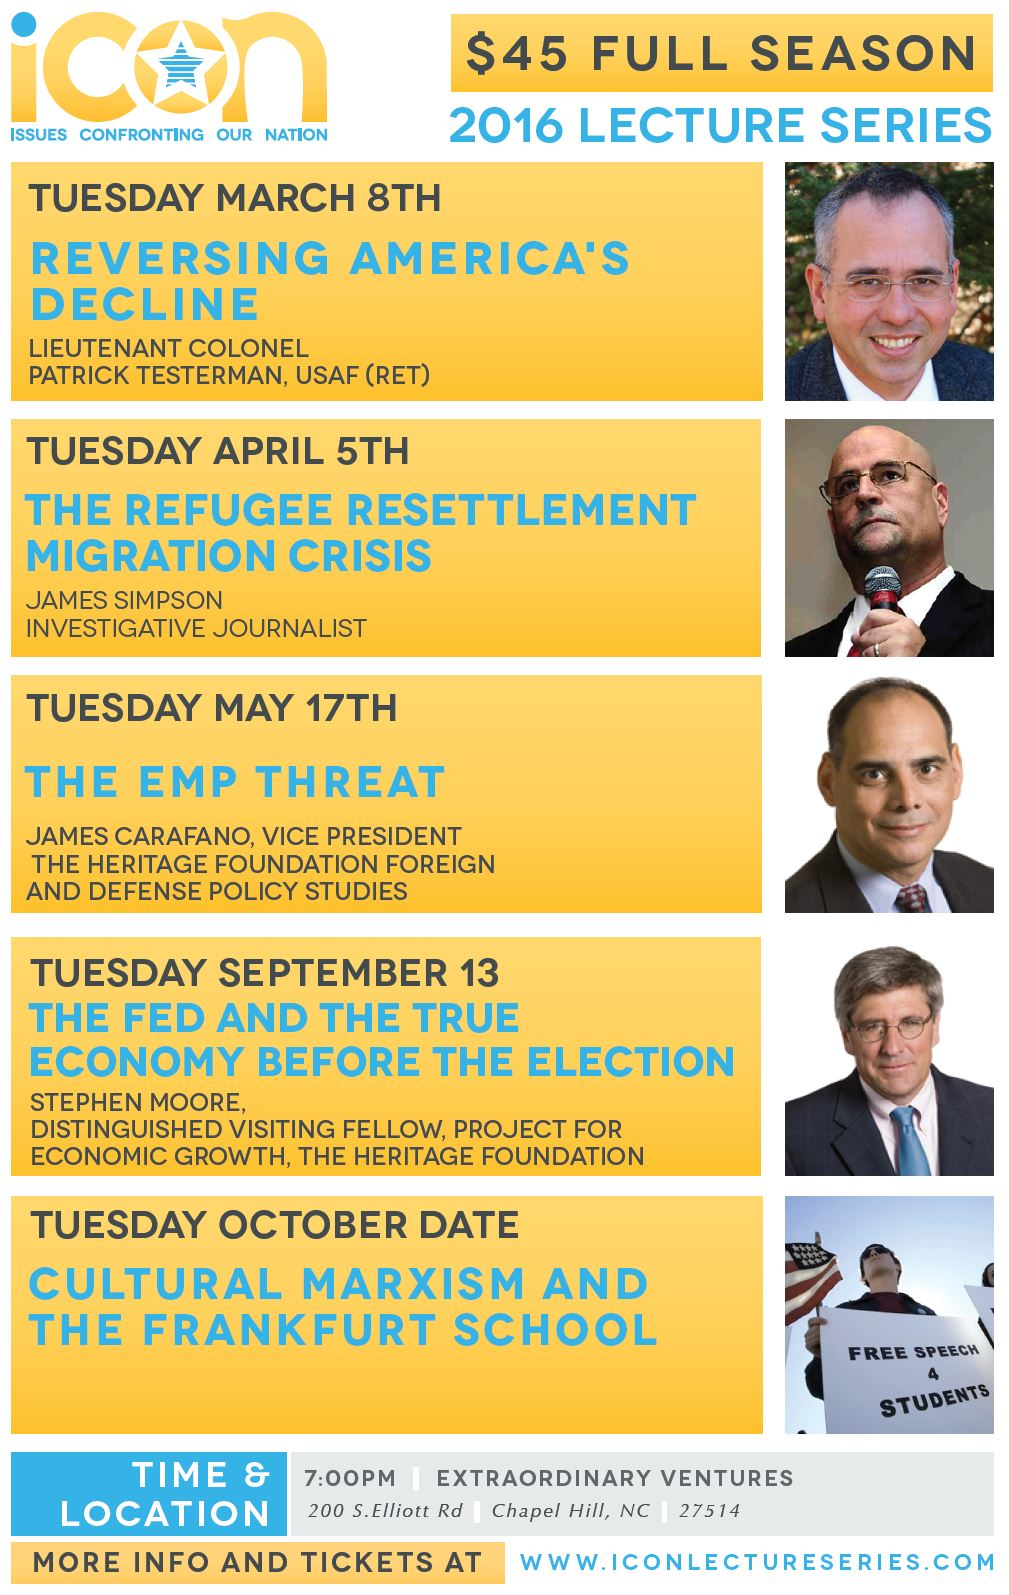 ICON Lecture Series 1016 Speaker Schedule, Chapel Hill, North Carolina